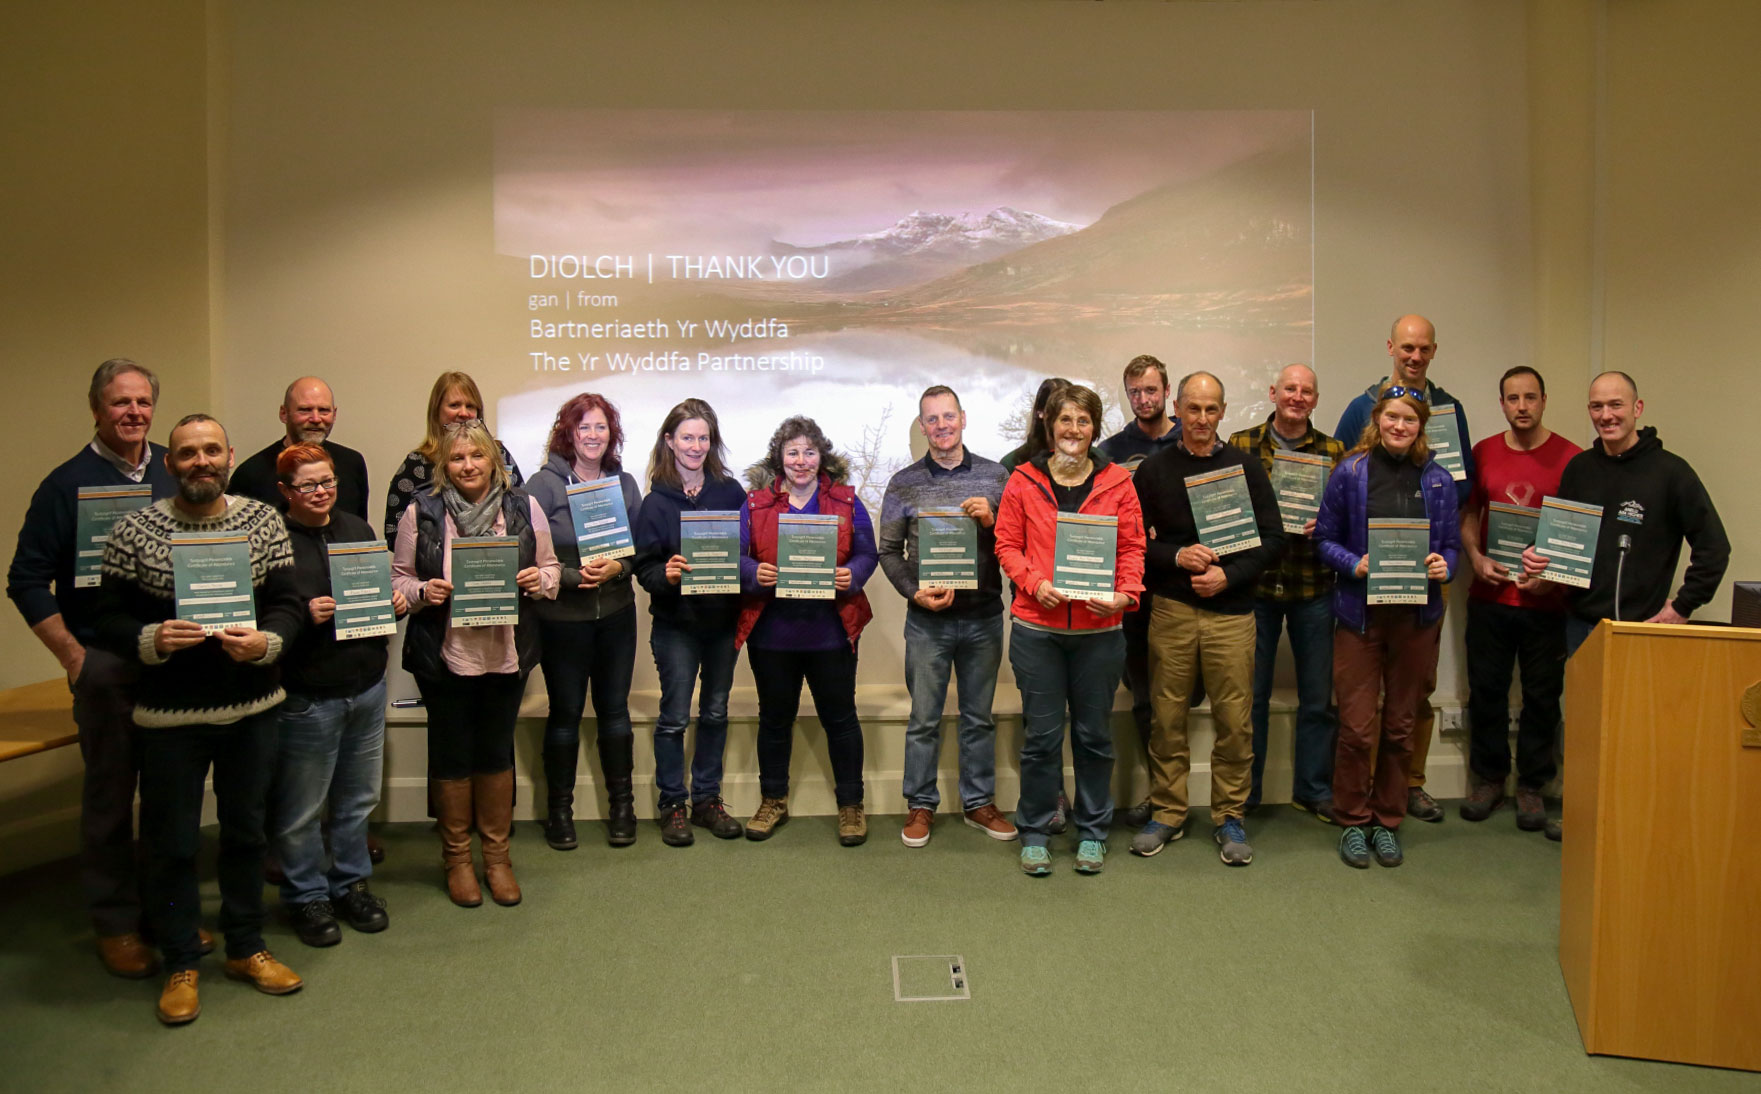 Snowdonia Ambassadors with certificates